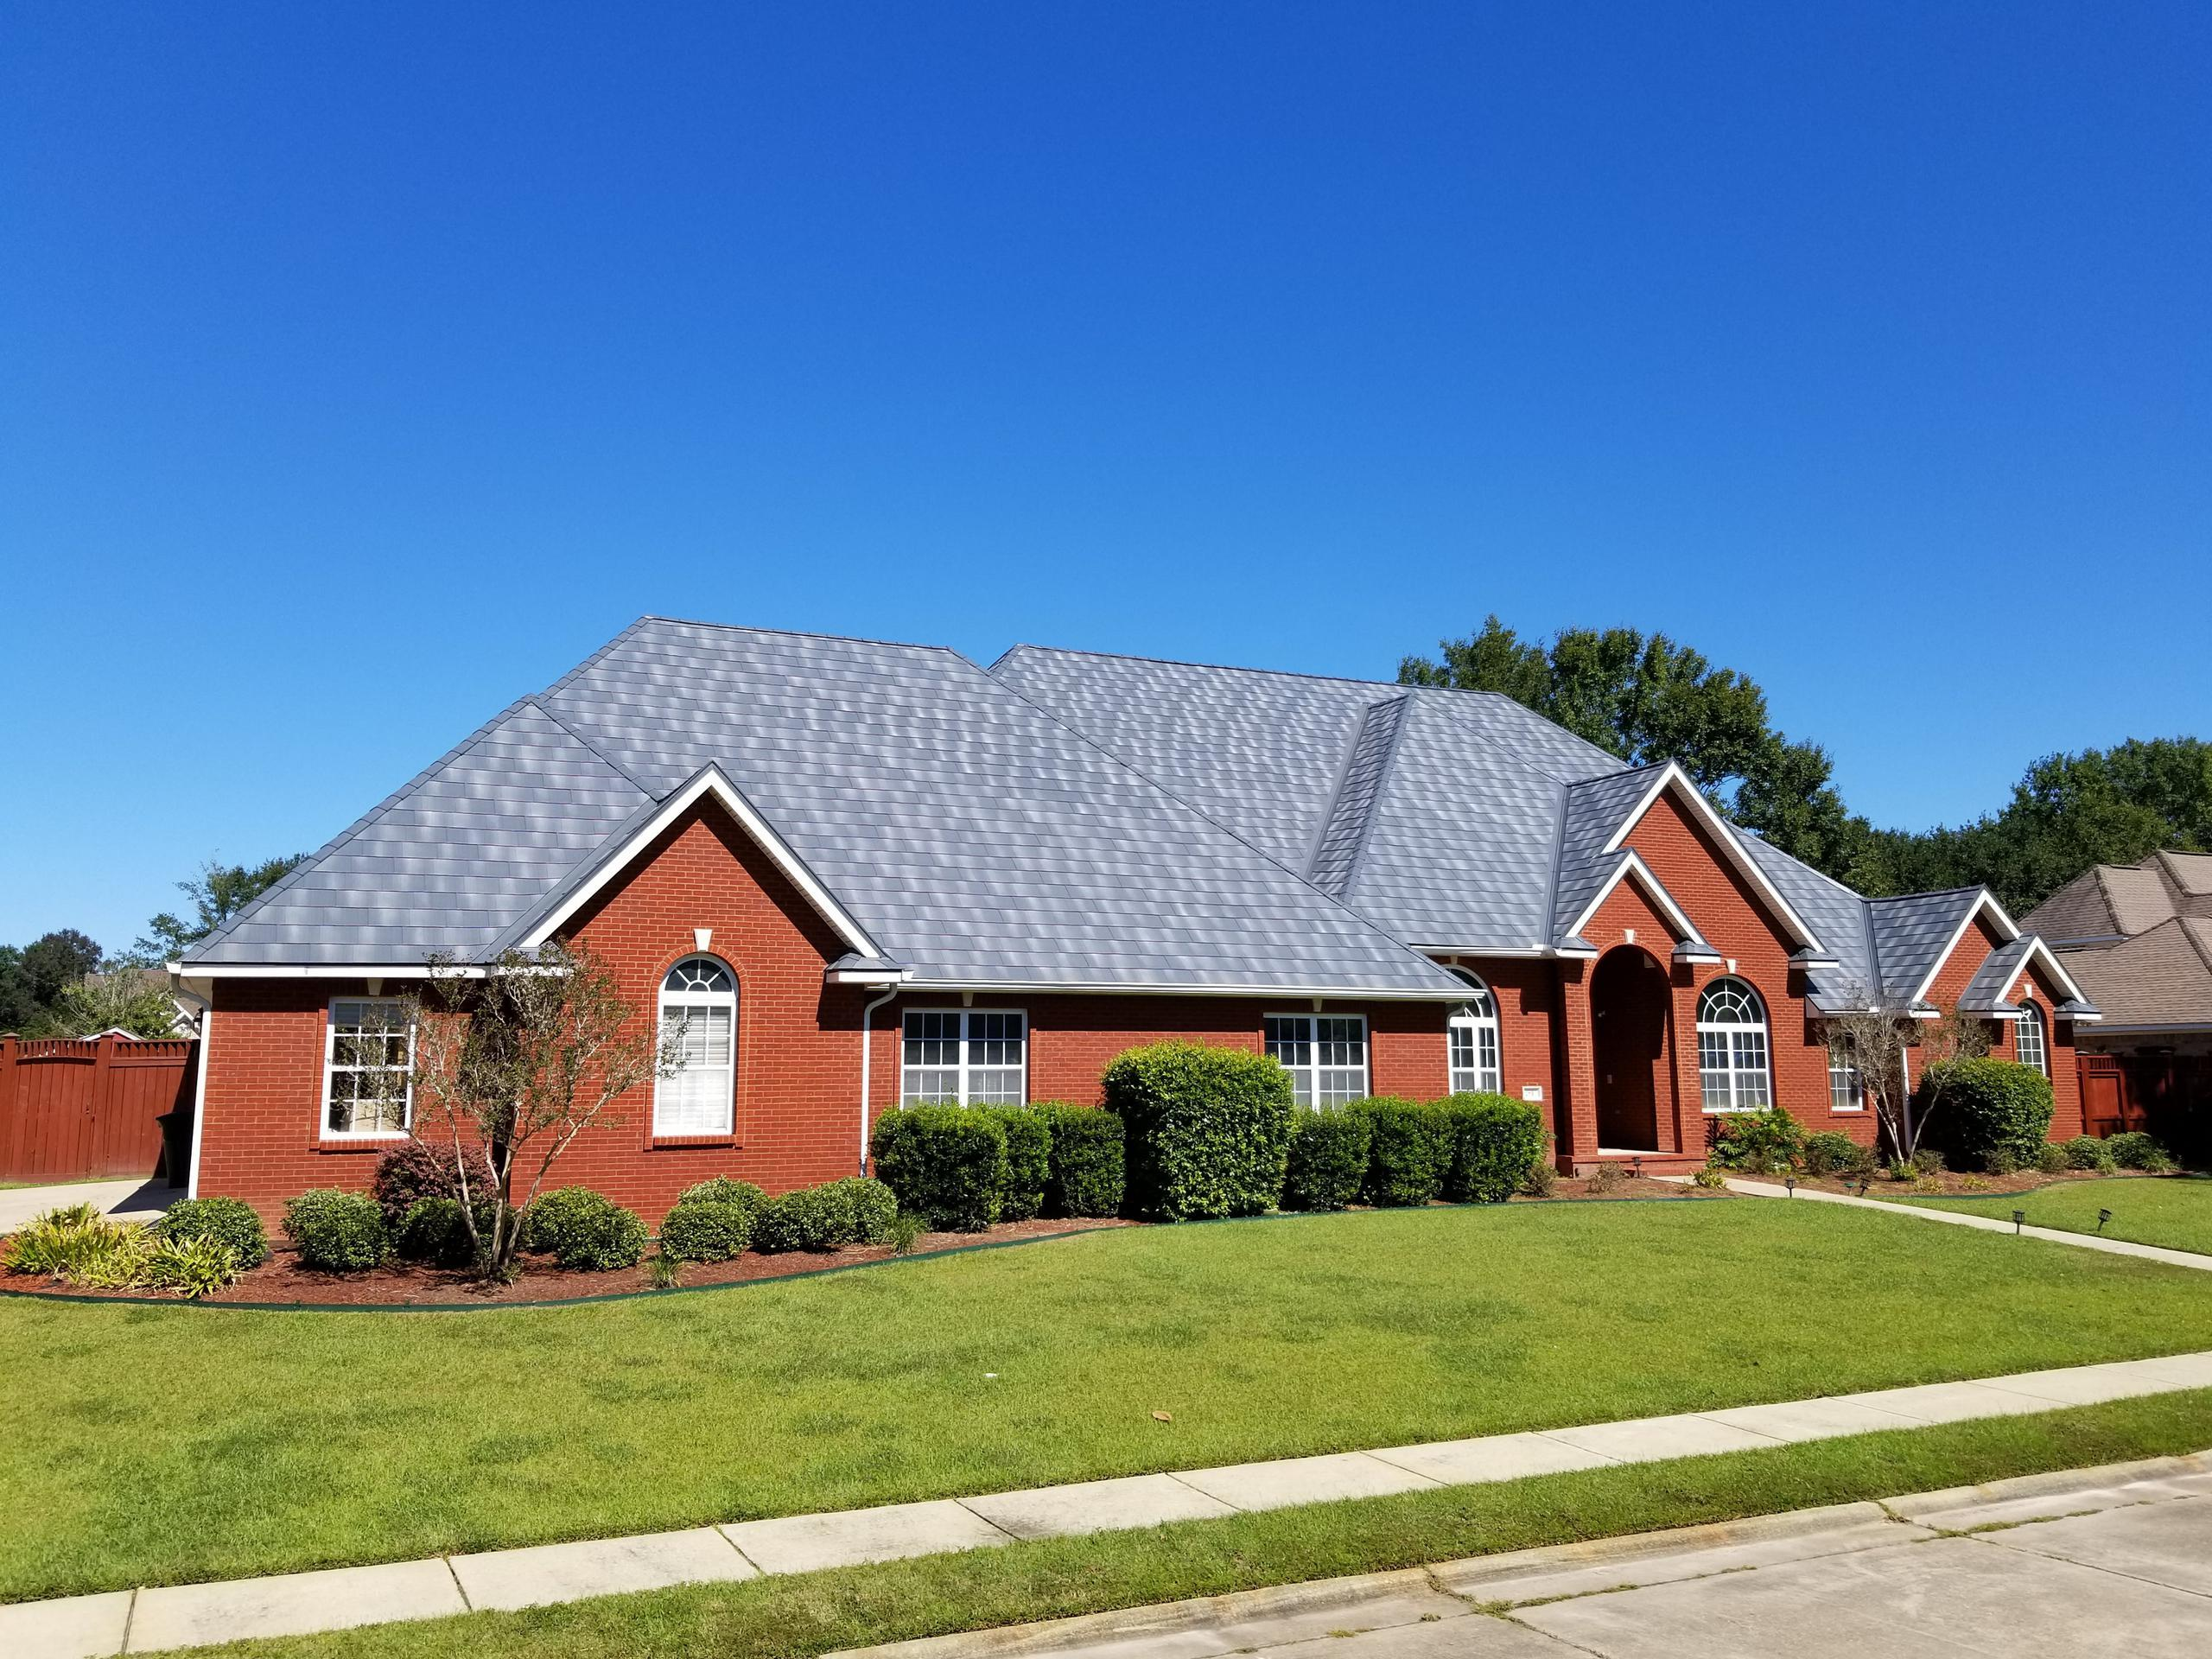 The award-winning Infiniti roofing from EDCO in Granite Gray Enhanced was selected for this red brick home to give it a distinctive appearance the is unmatched,